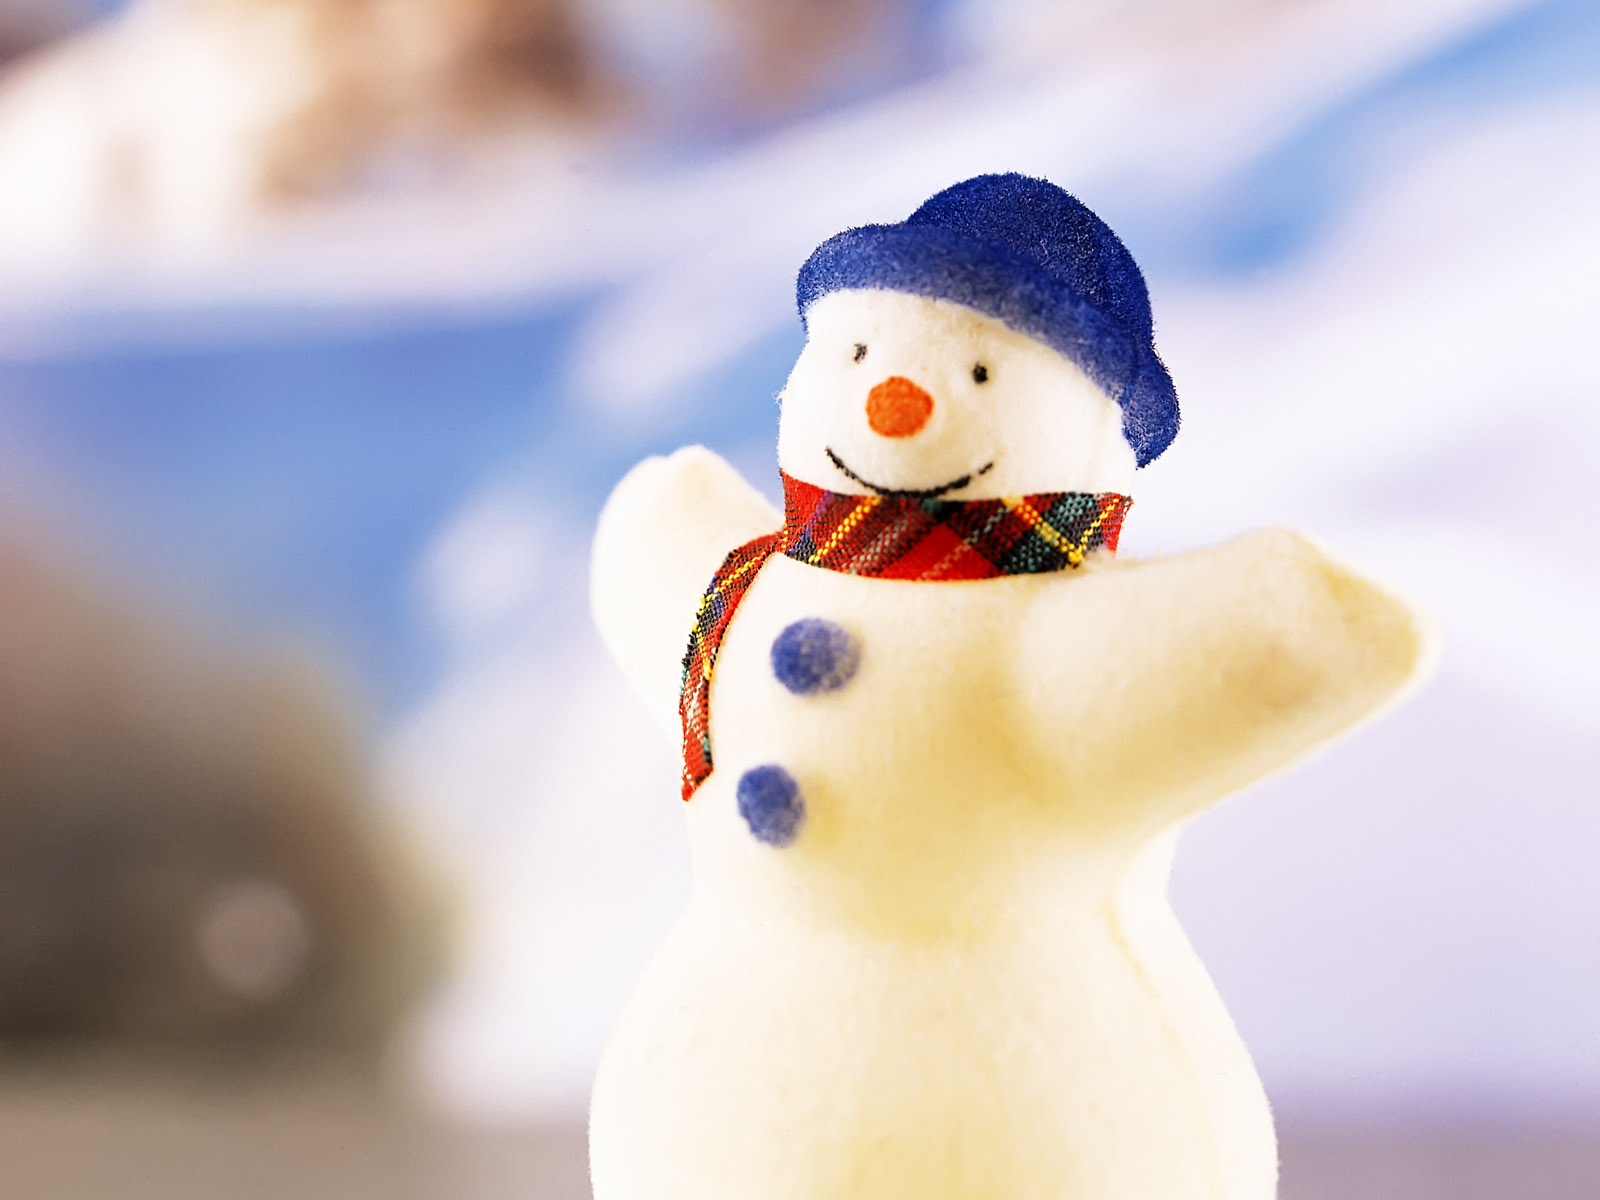 happy_snowman_christmas-1600x1200.jpg